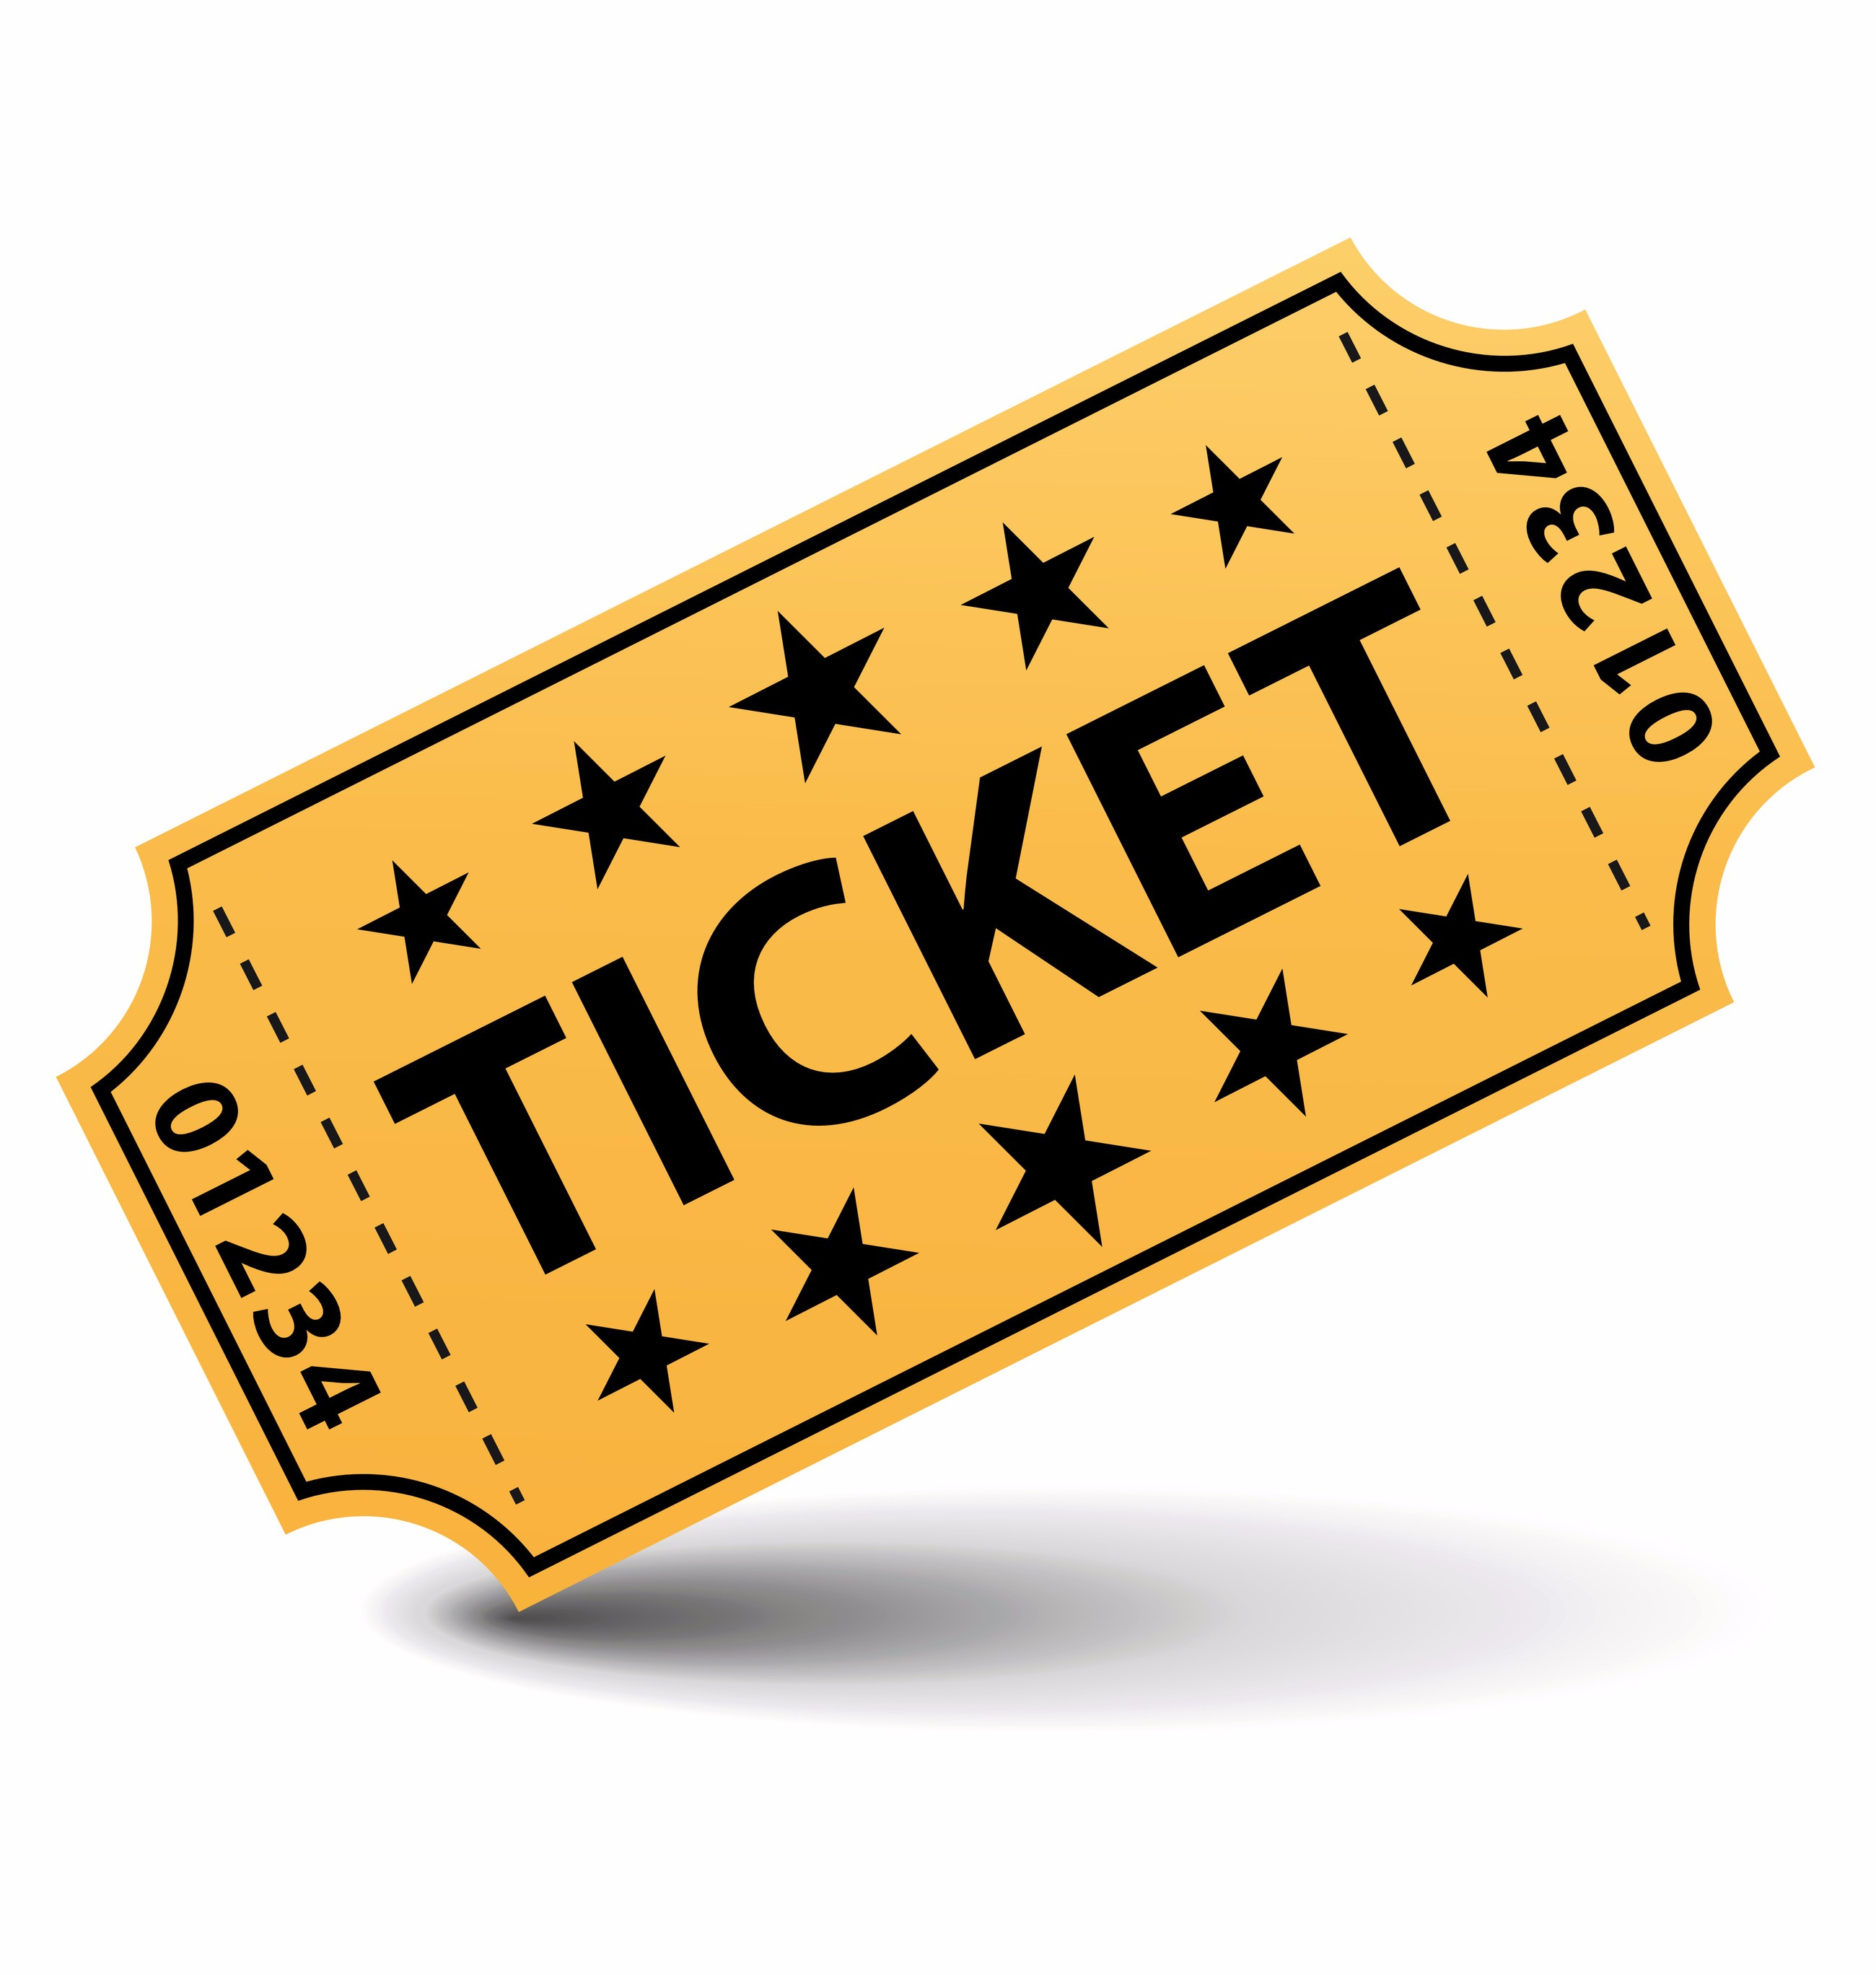 Vip Ticket PNG - 54504